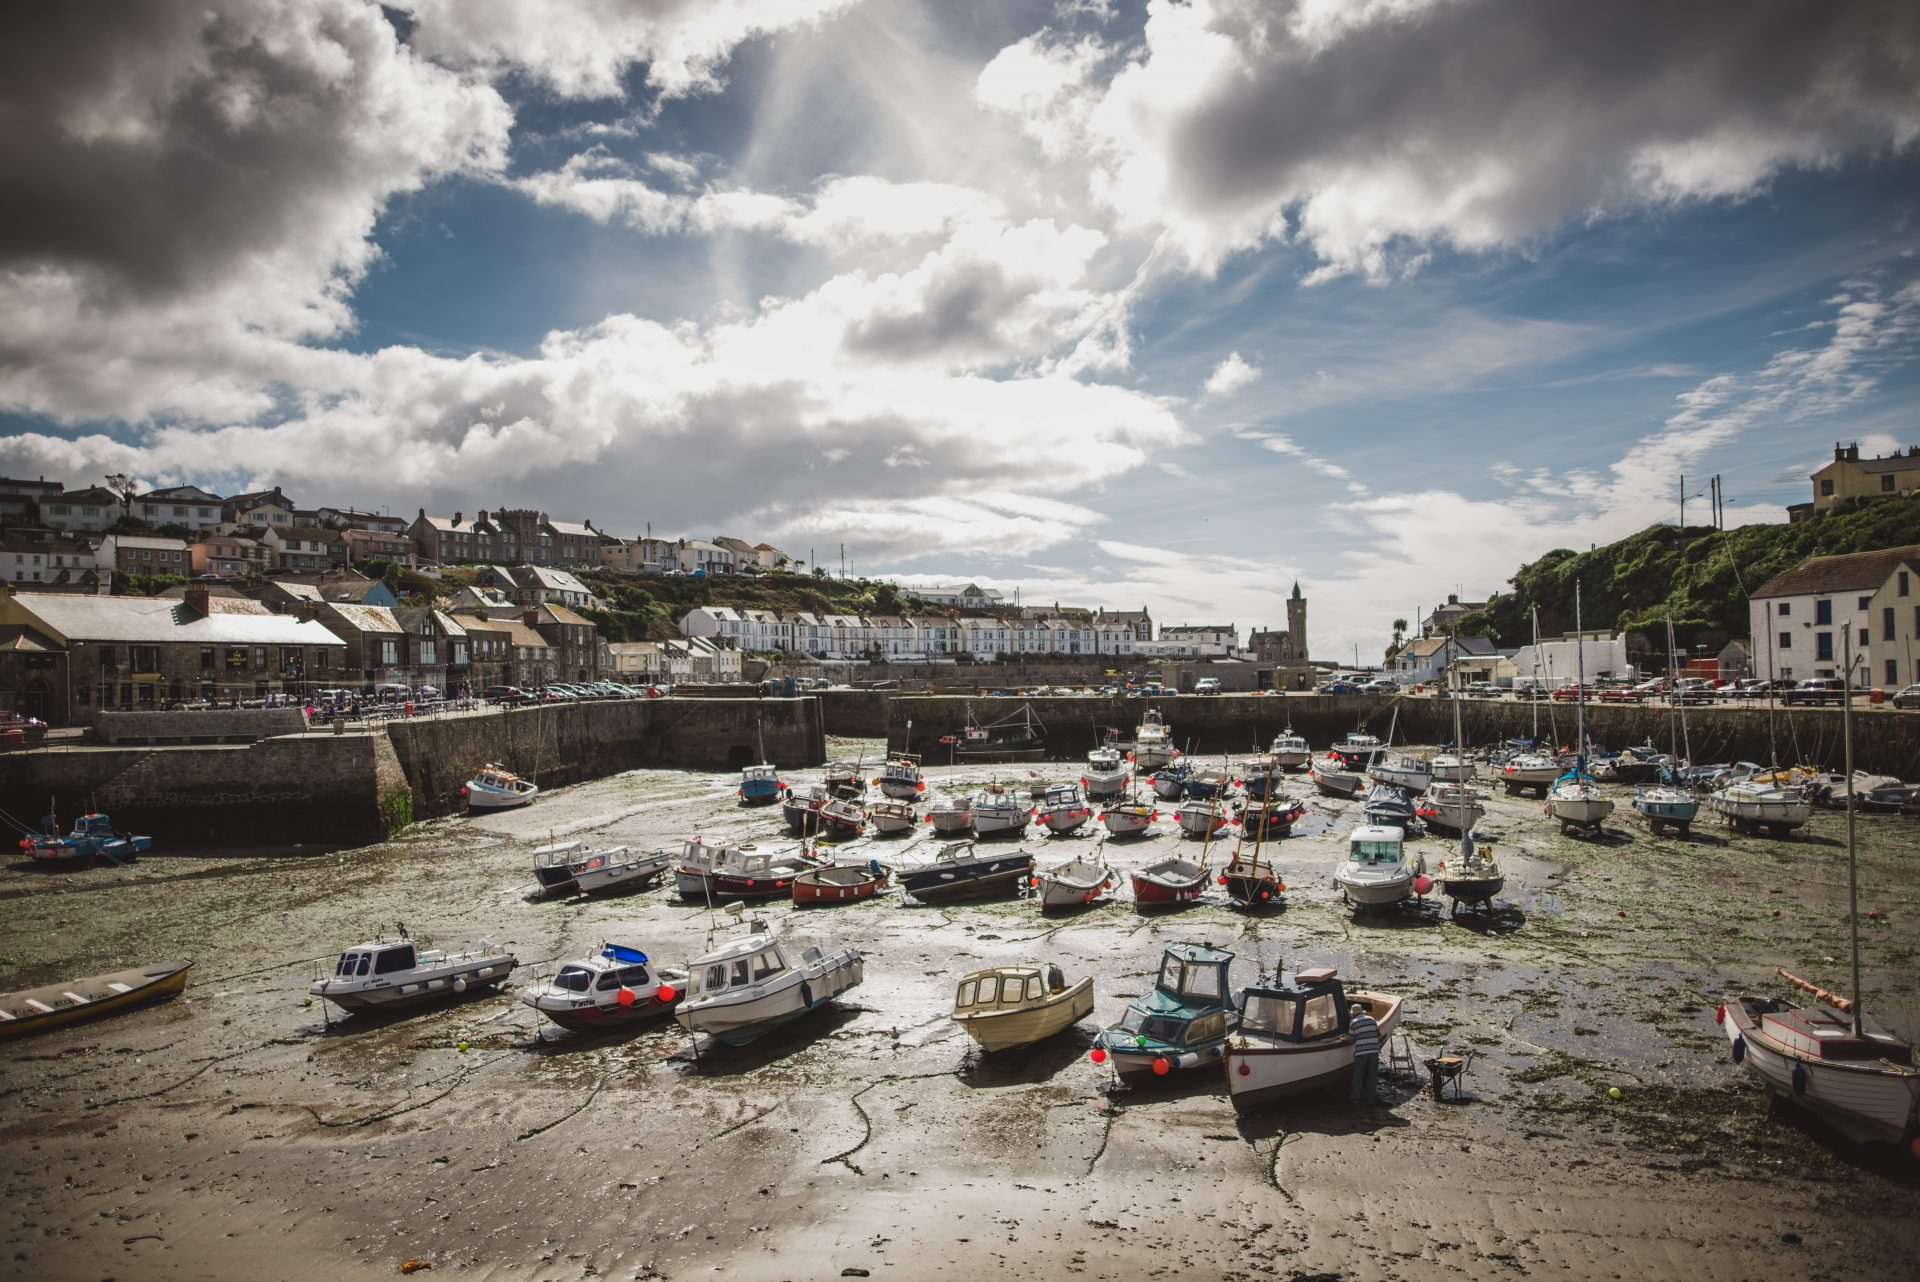 Porthleven, Cornwall Wedding Photographer - Stewart Girvan